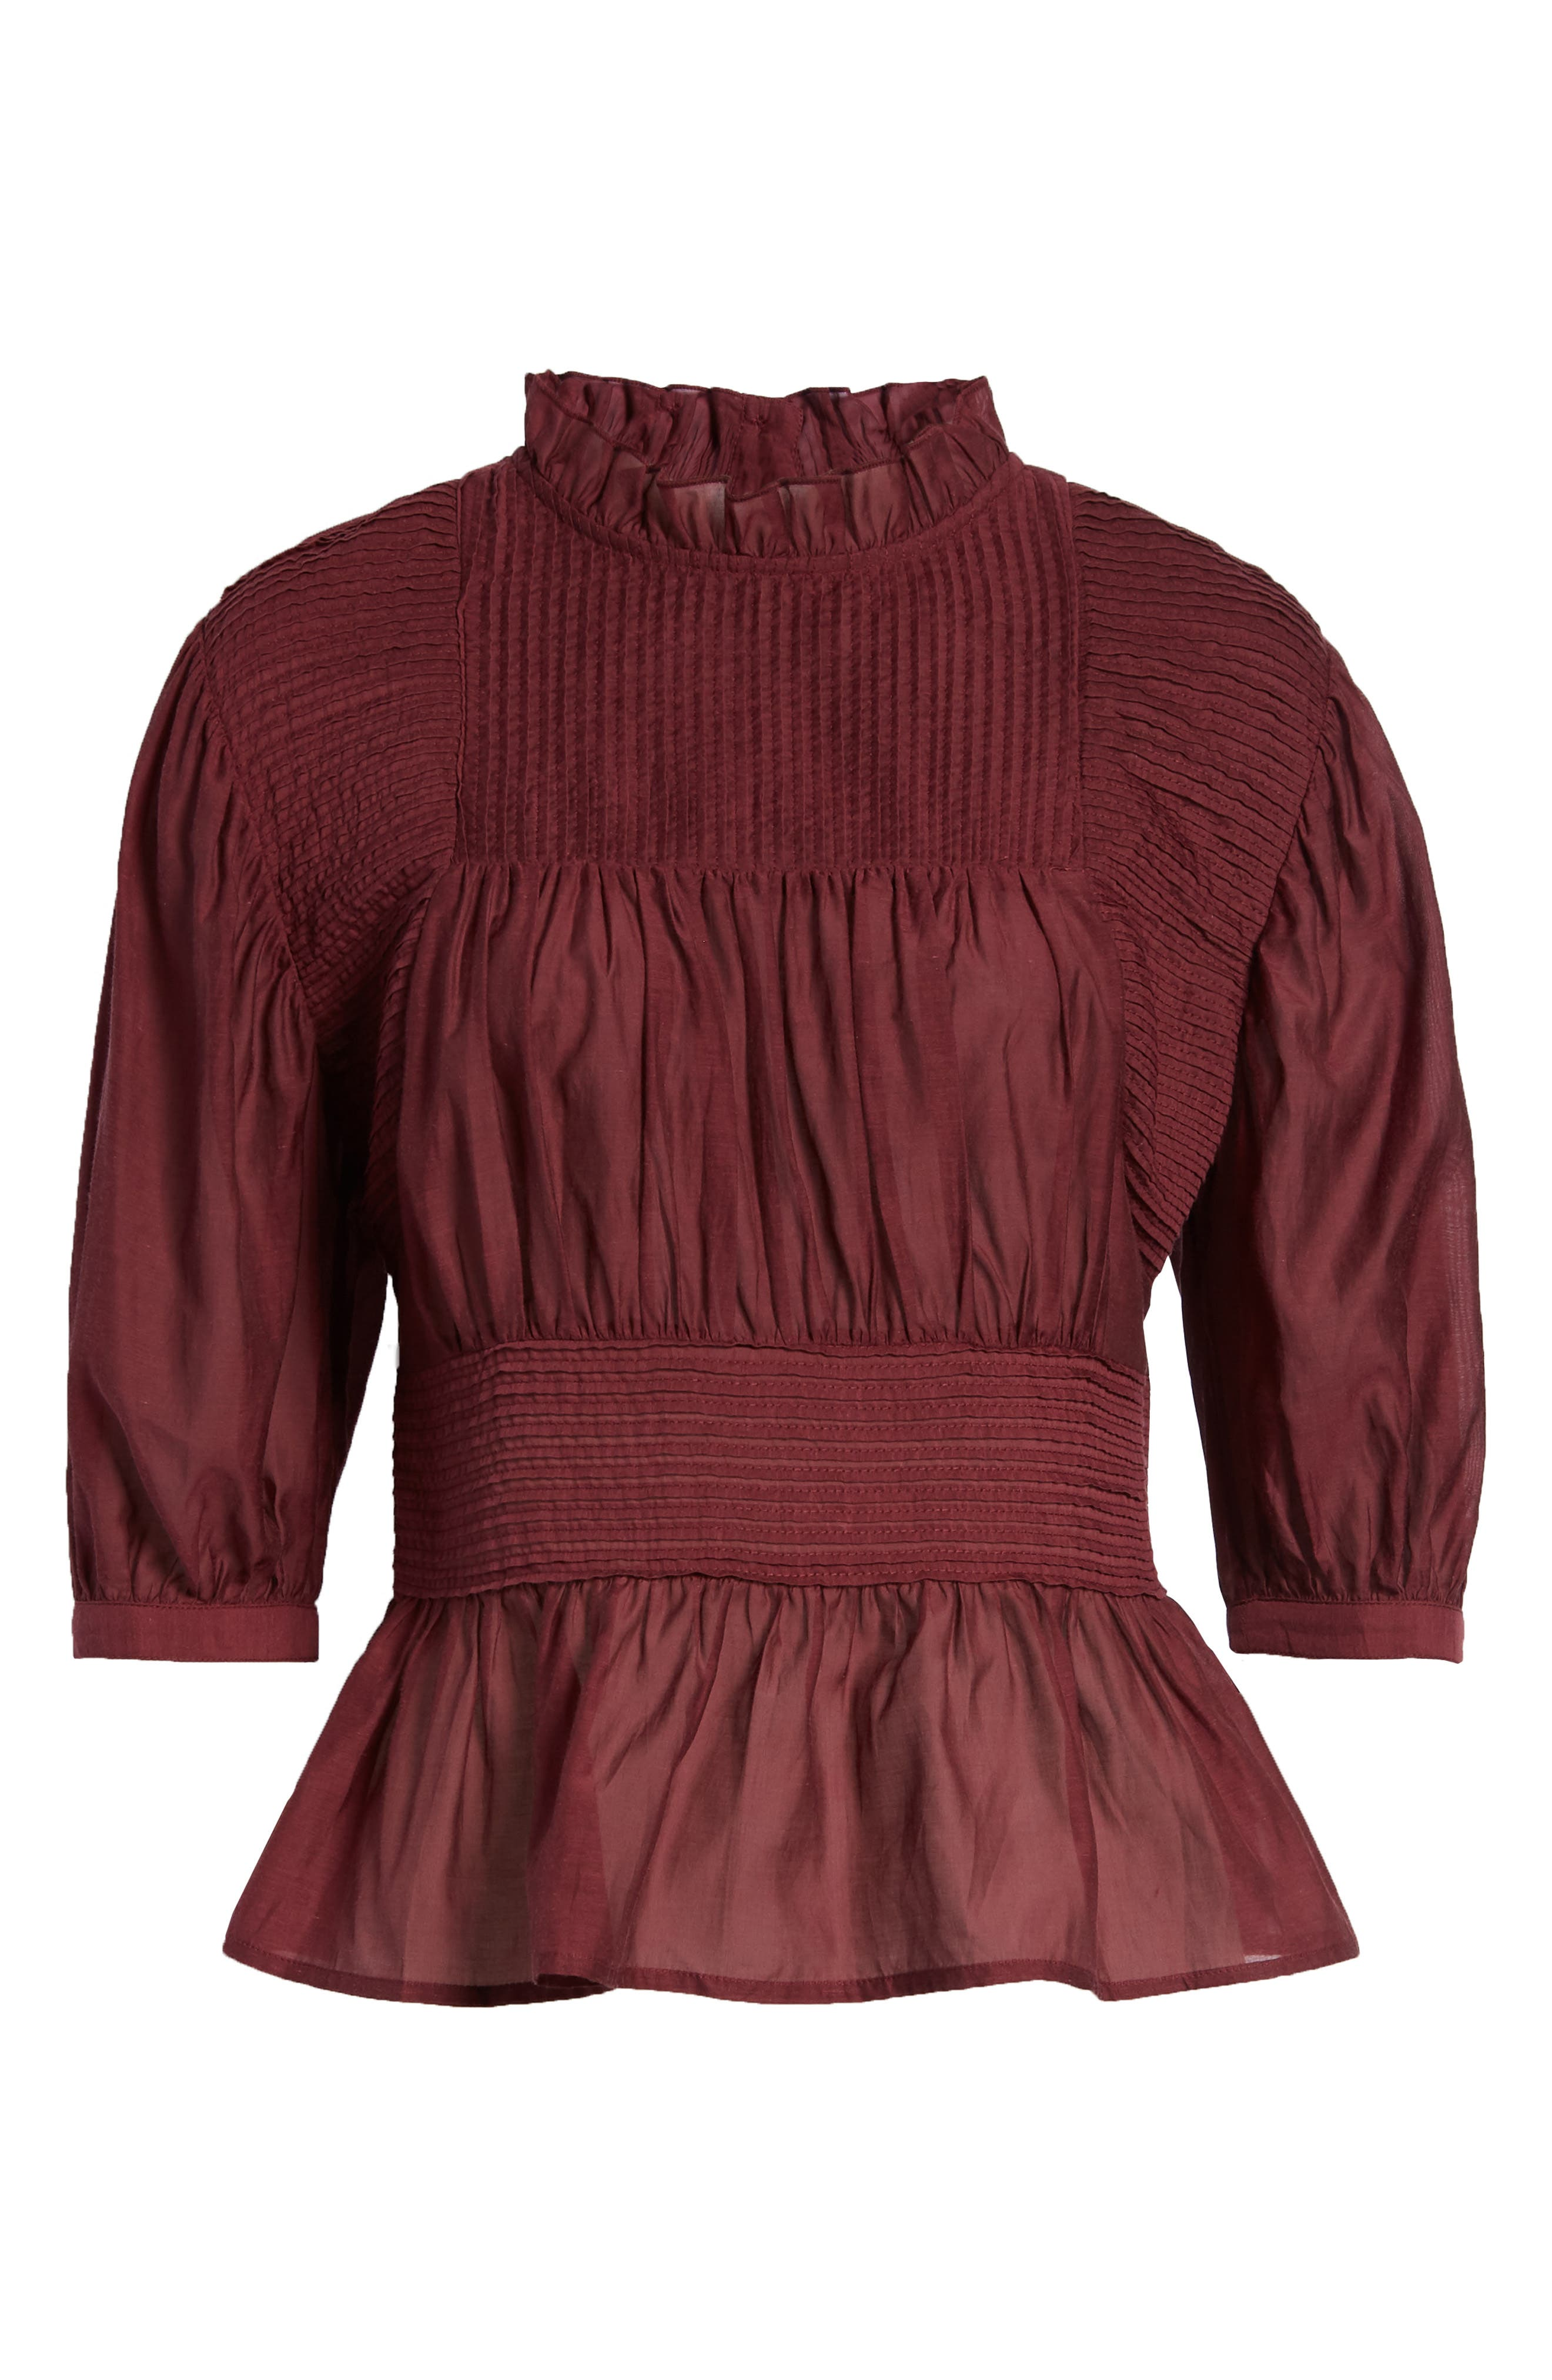 Pleated Peplum Top,                             Alternate thumbnail 7, color,                             RED TANNIN